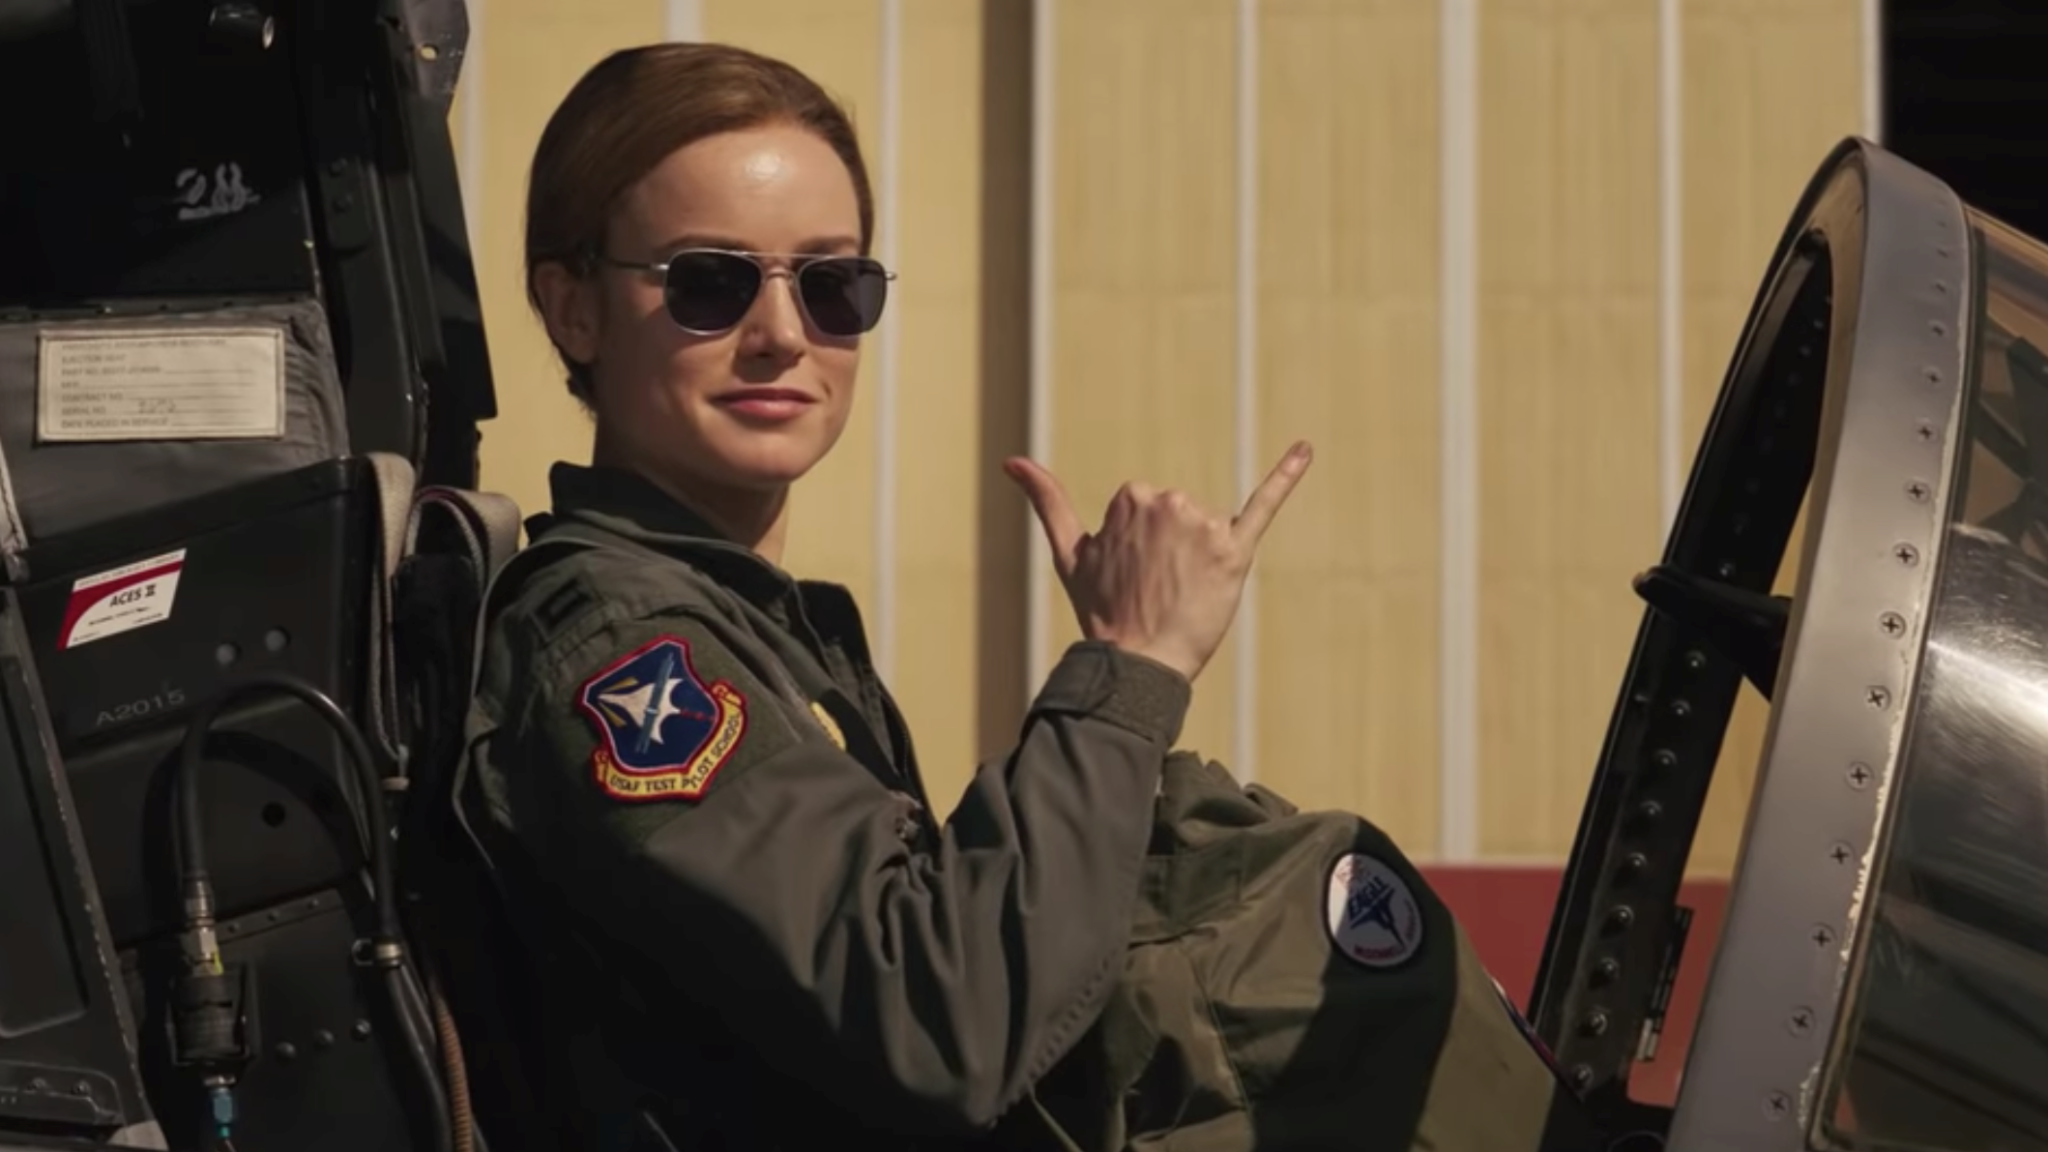 Brie Larson's first outing as Captain Marvel in the MCU made $1.128 billion world-wide.